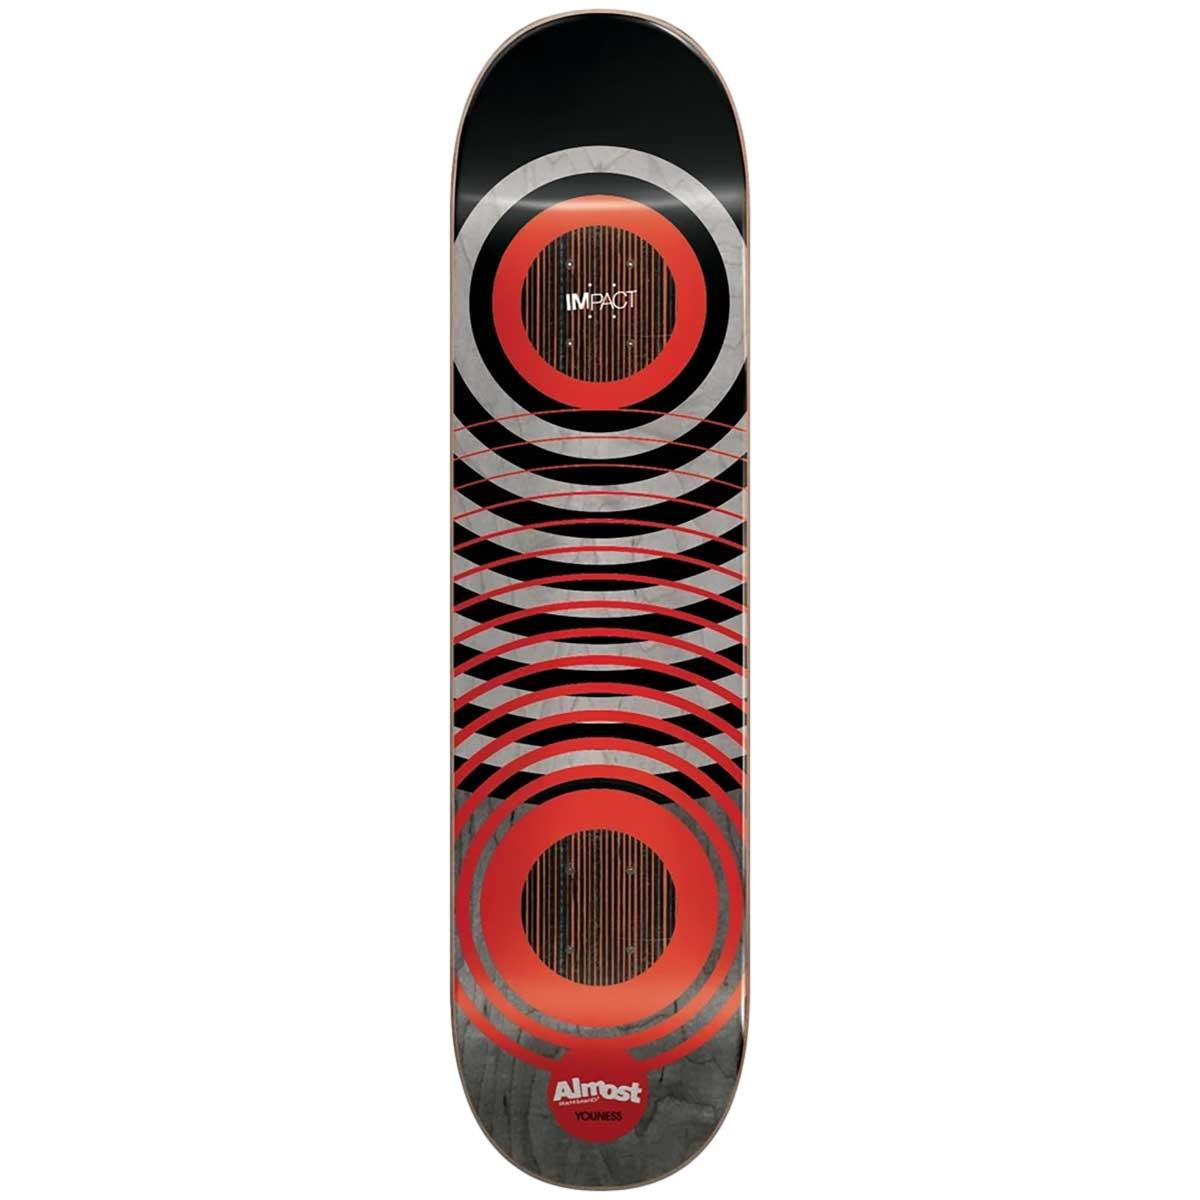 Almost Red Rings Impact Youness Skateboard Deck 8.25